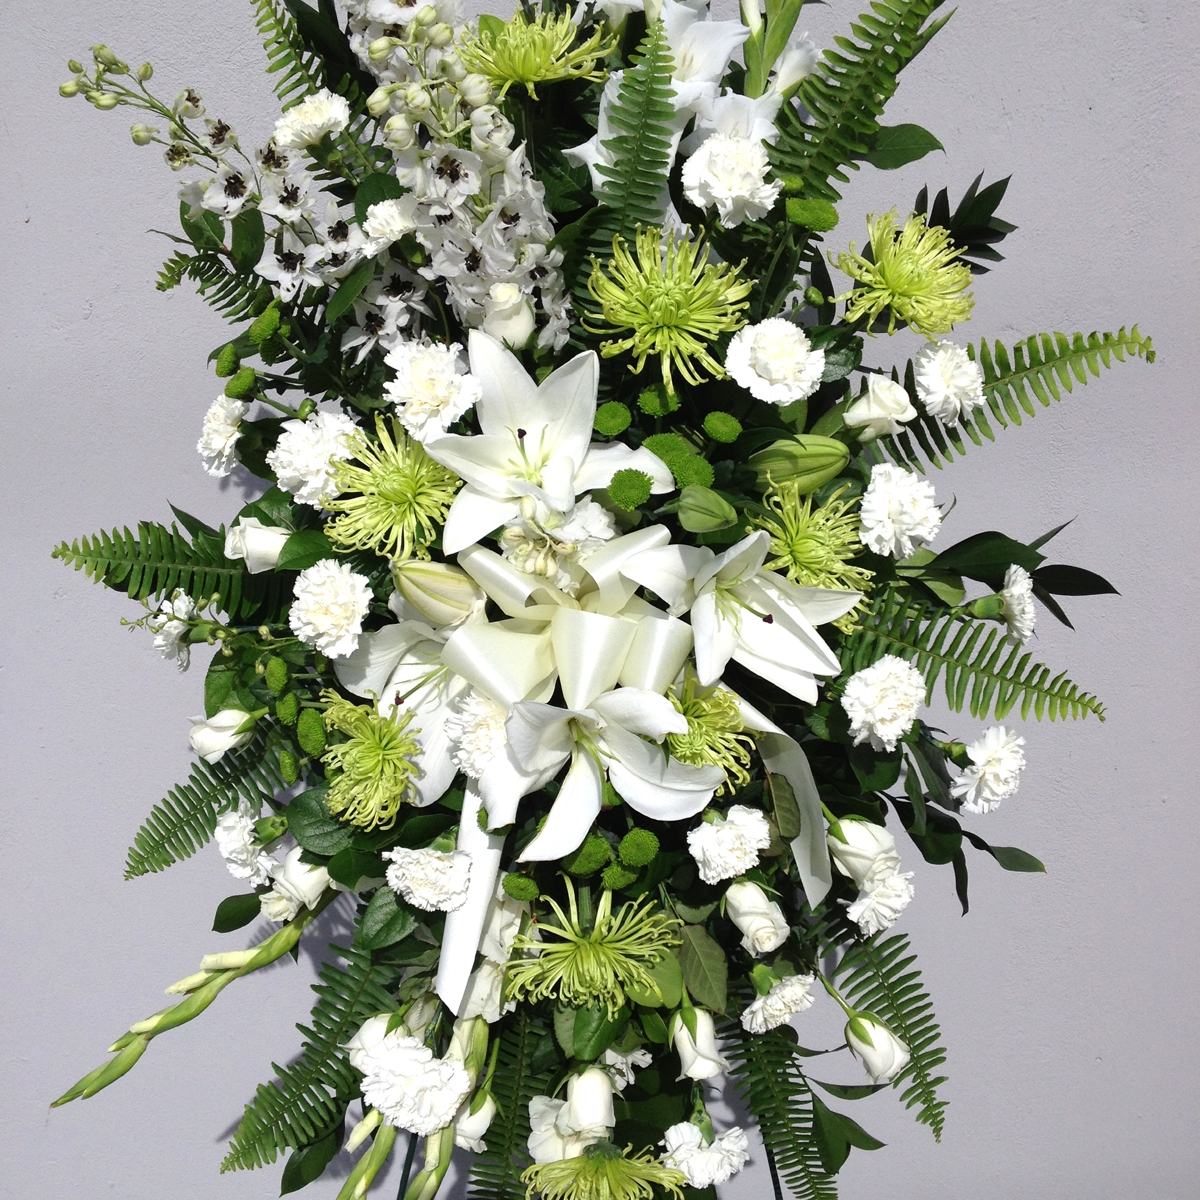 Best Funeral Flower Delivery Vancouver BC | Adele Rae Florist